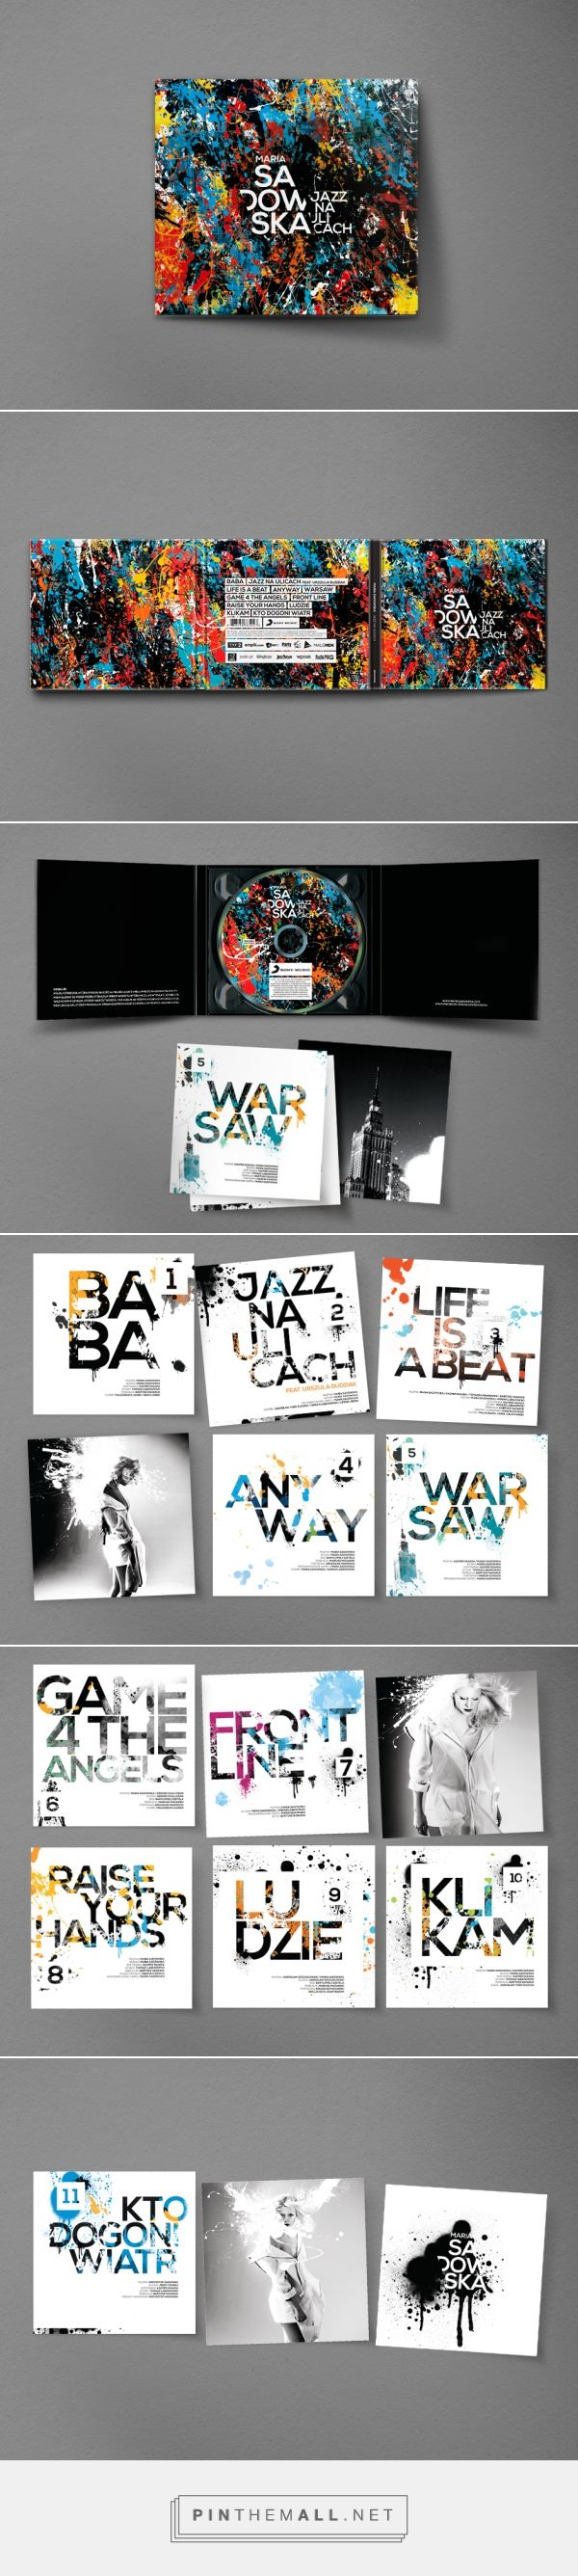 Maria Sadowska - Jazz na ulicach CD album - Packaging of the World - Creative Package Design Gallery. If you want to customize a good-looking CD packaging, visit www.unifiedmanufacturing.com.